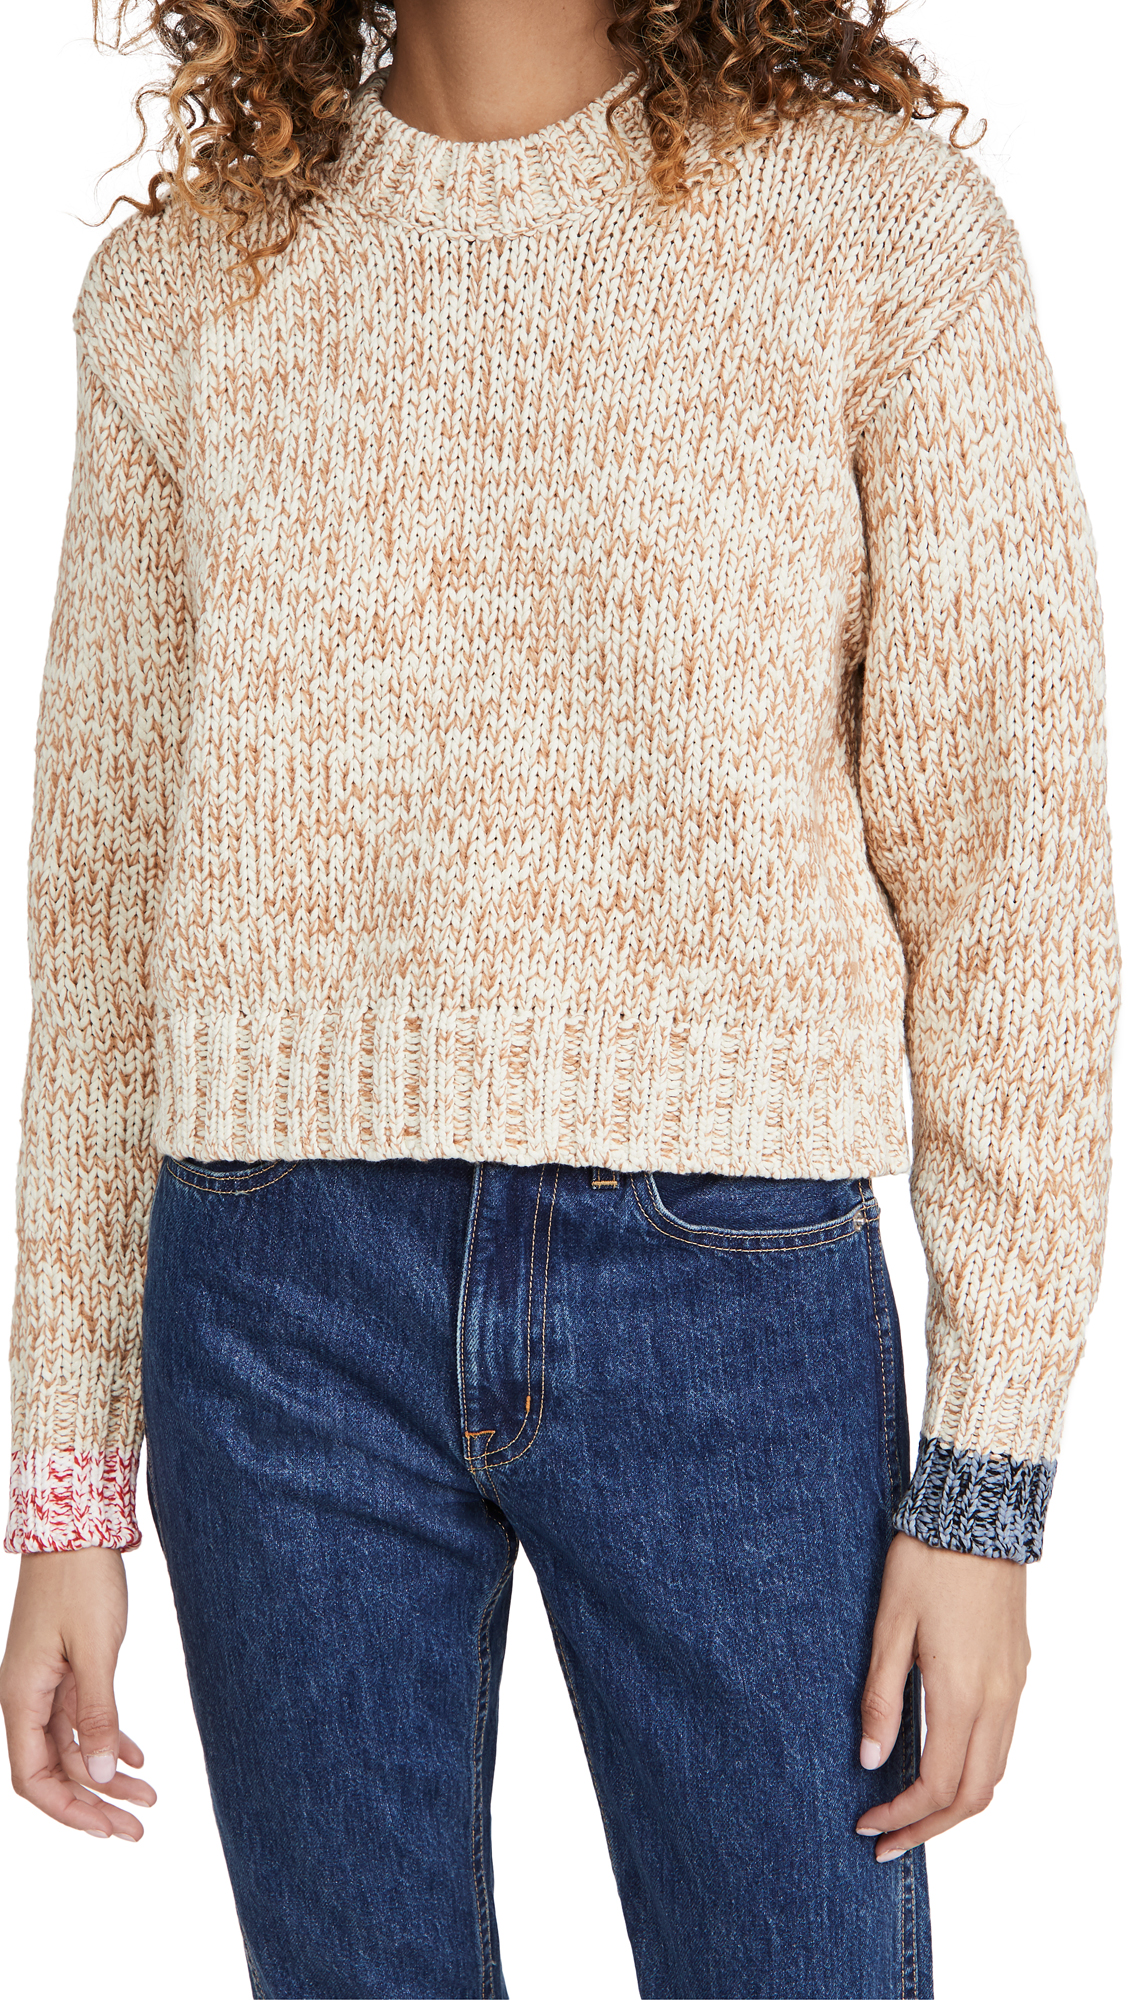 Acne Studios Spongy Knit Sweater